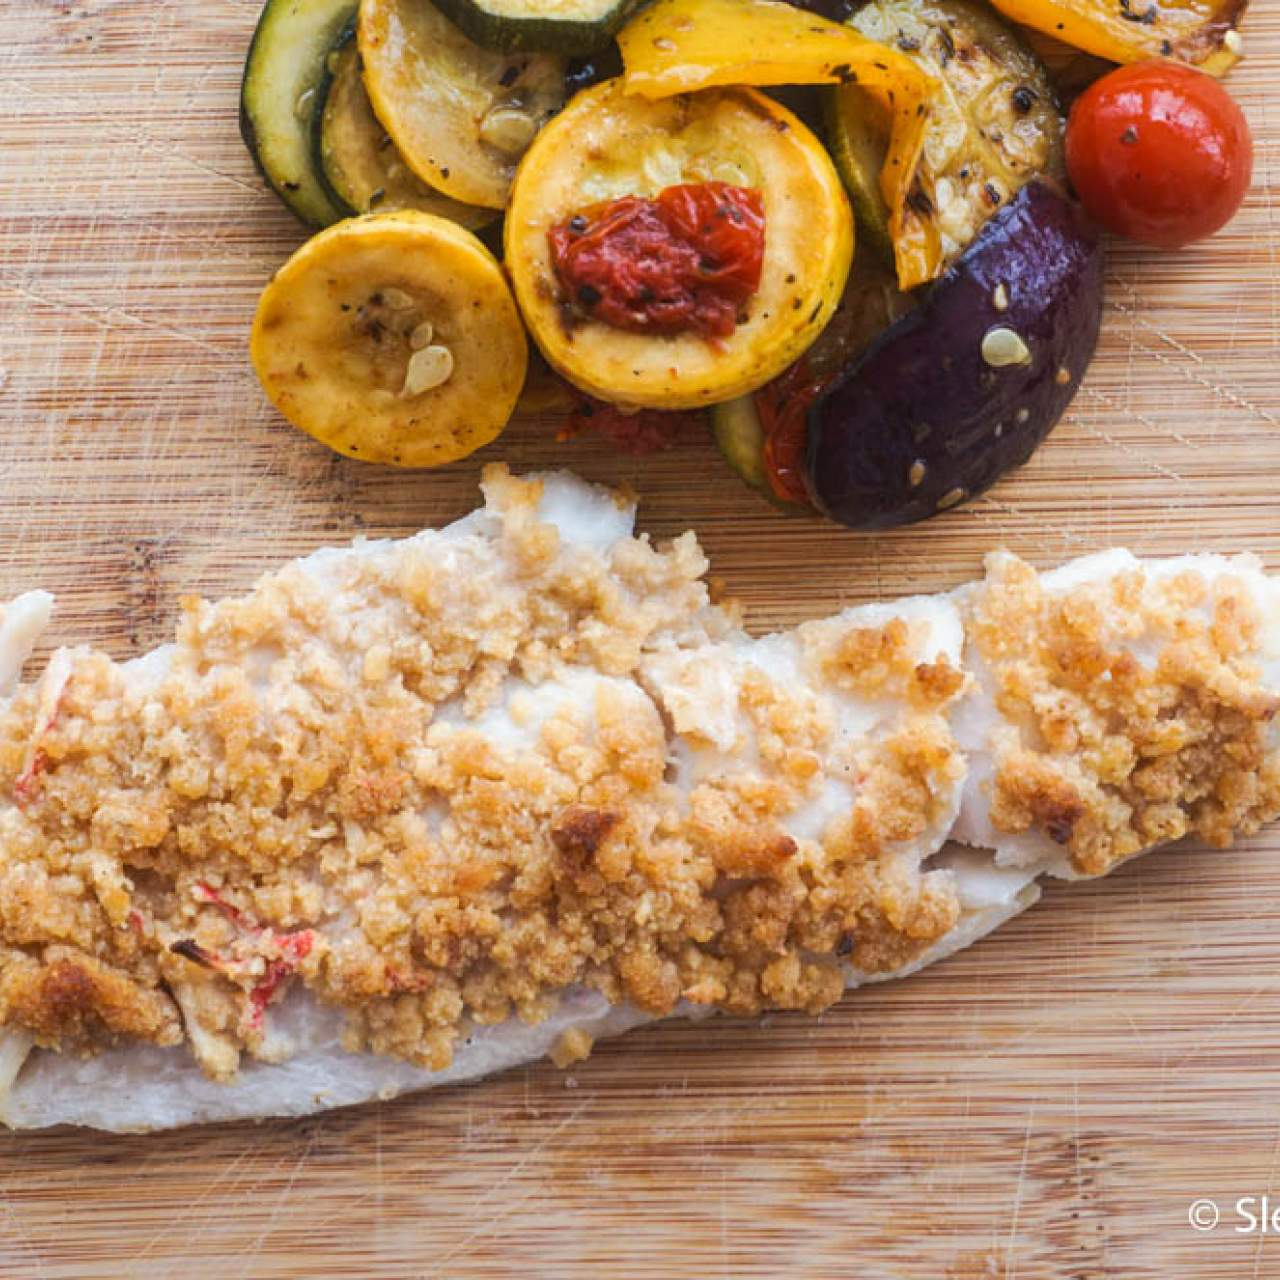 Baked Haddock With Seafood Stuffing